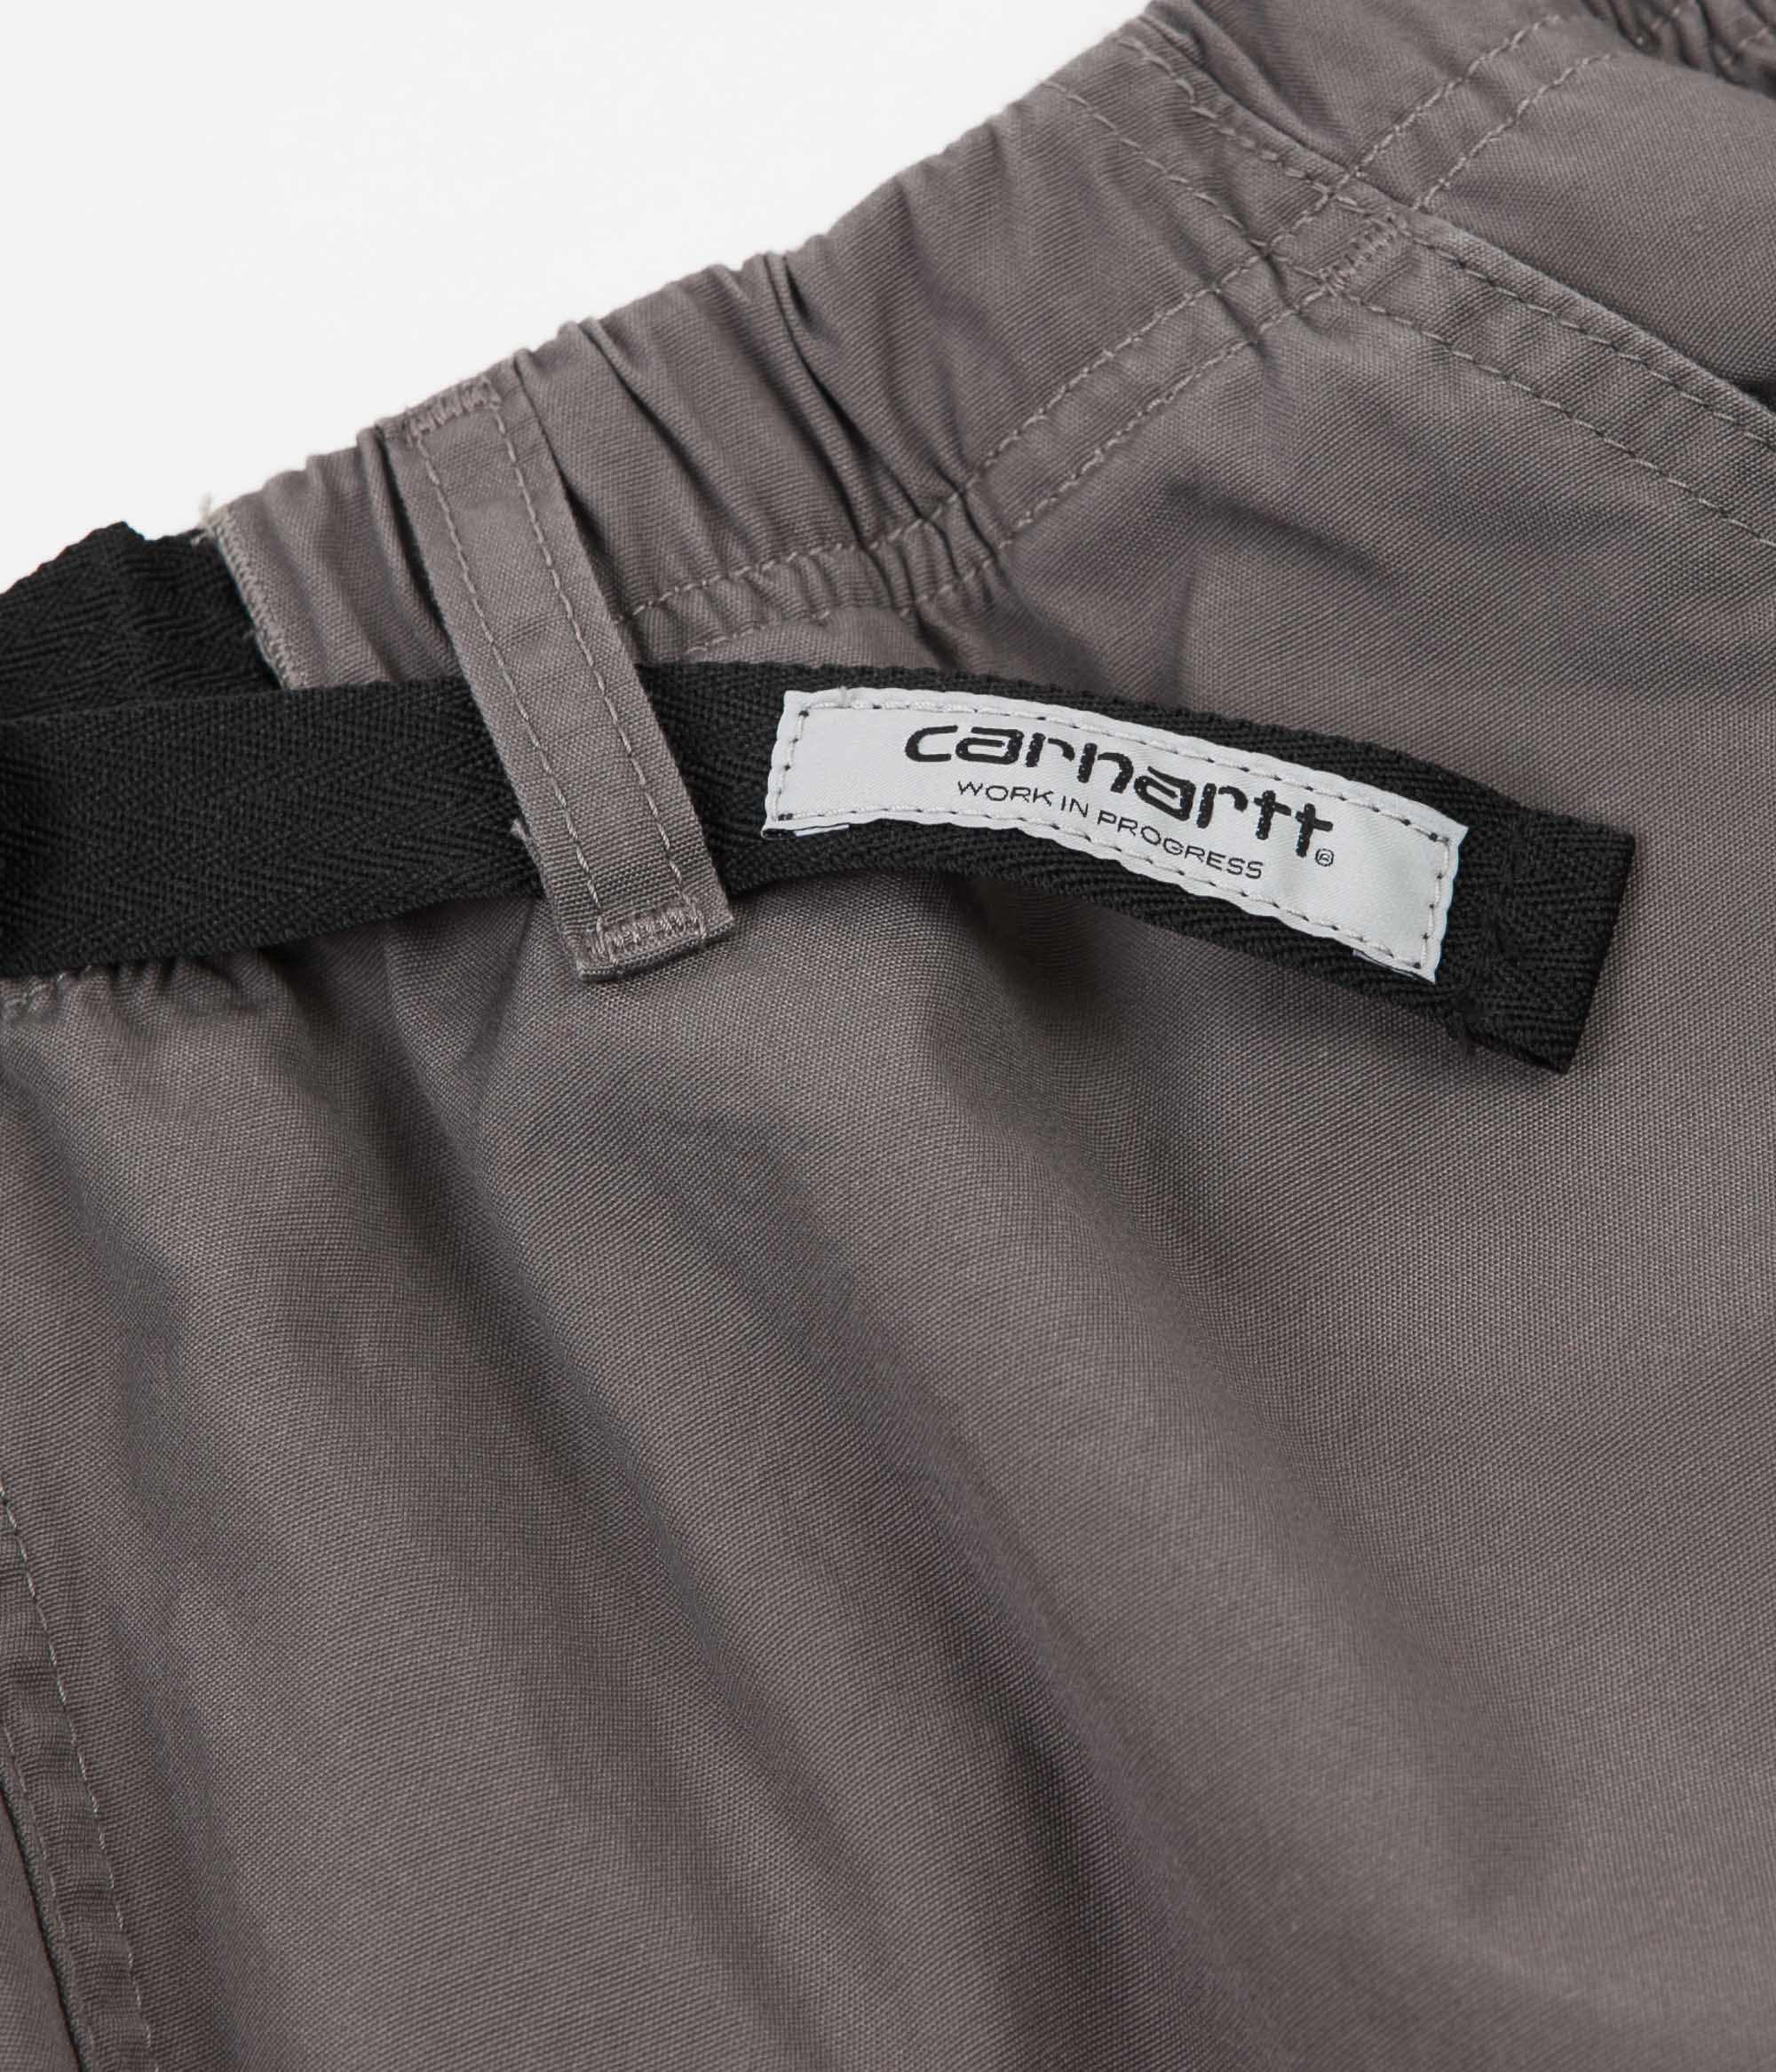 Carhartt Clover Shorts - Air Force Grey Rinsed